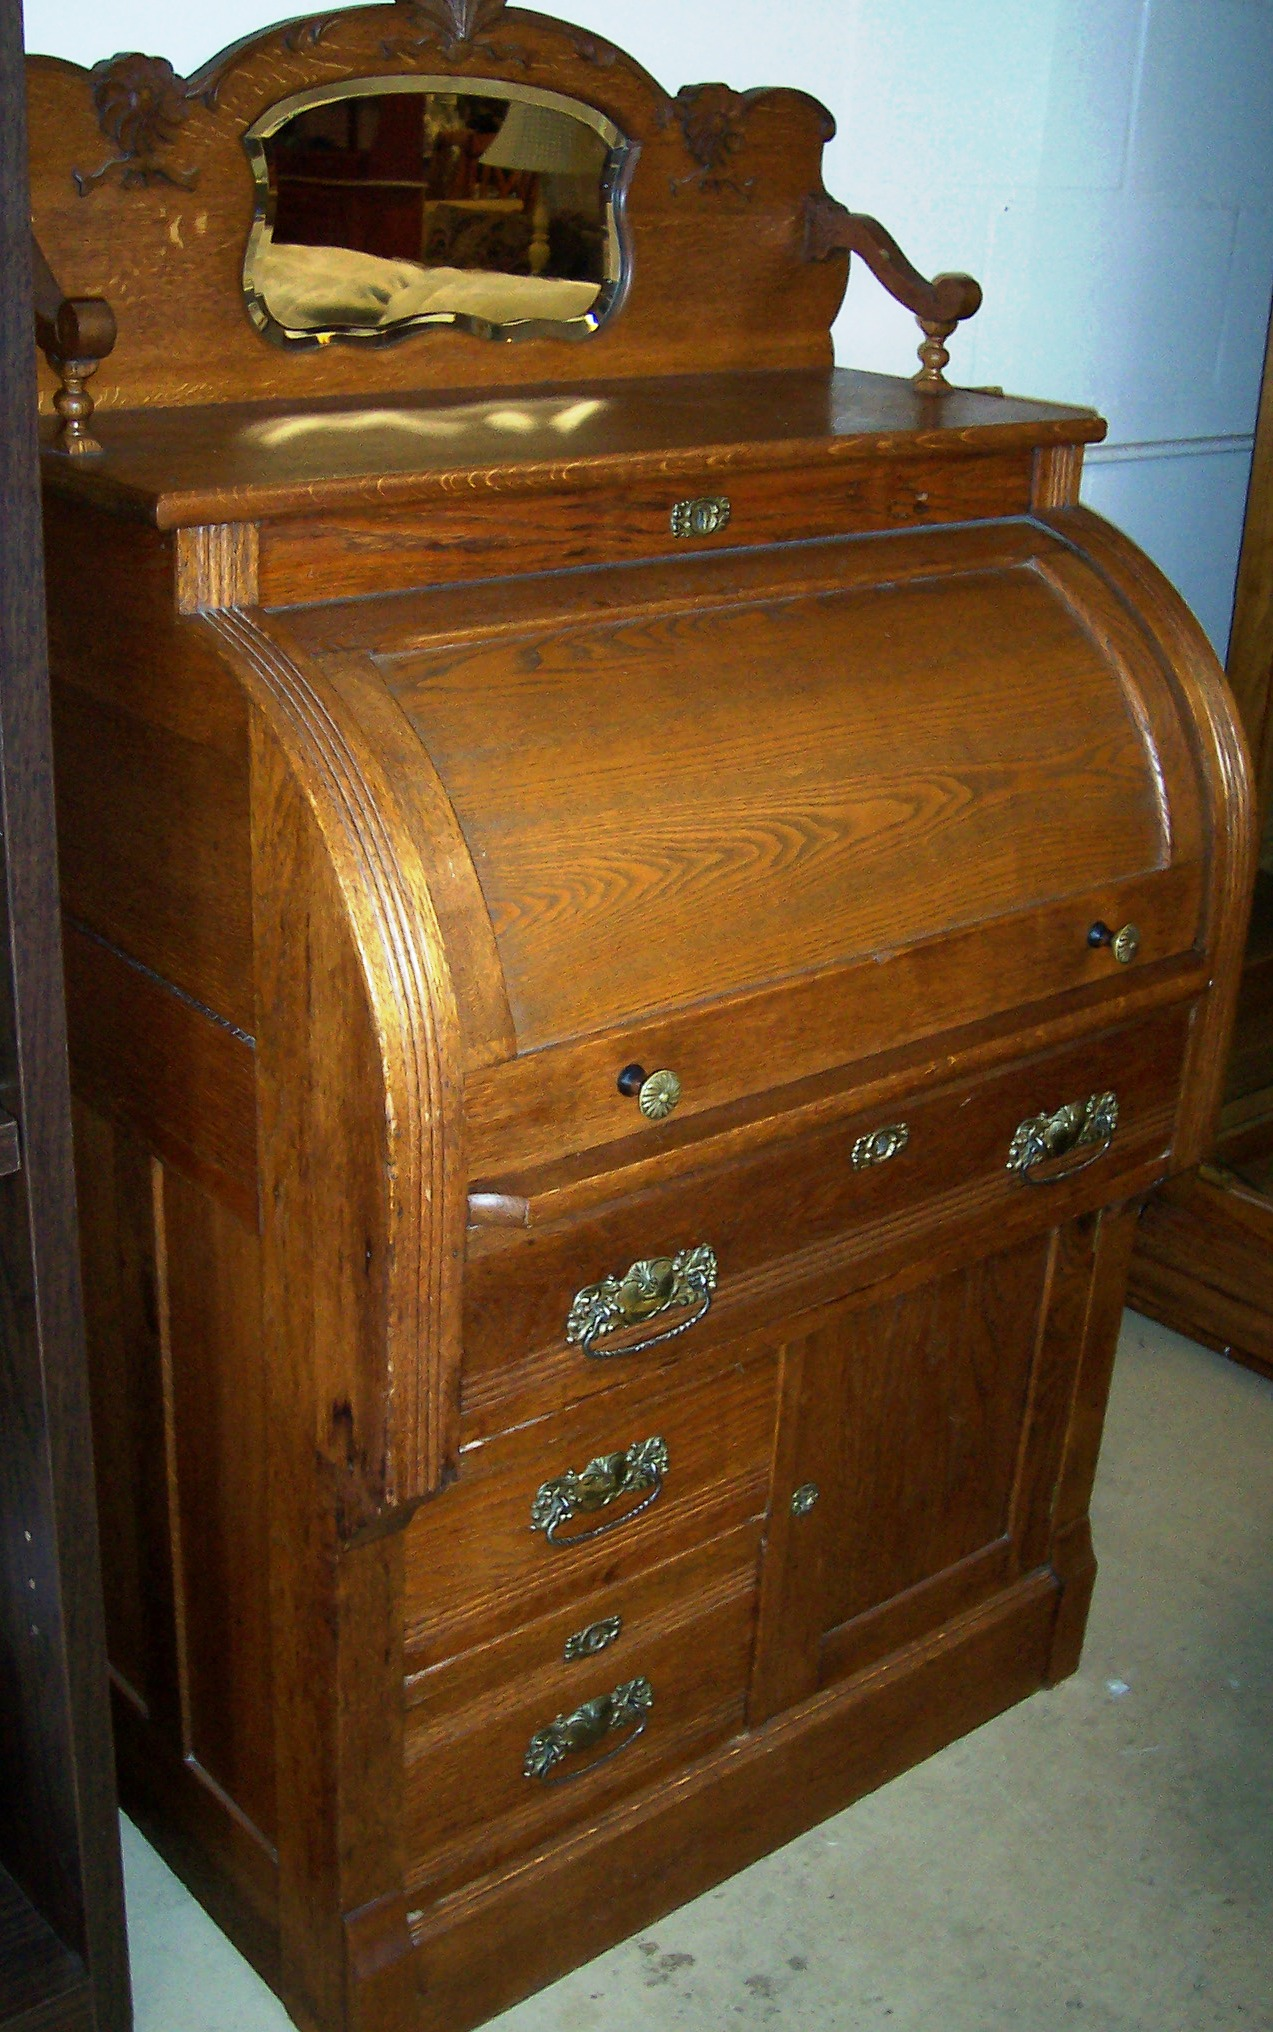 This Is A Solid Oak Antique Cylinder Roll Top Desk Has Slide Out Writing Surface Also Includes Removable Organizer